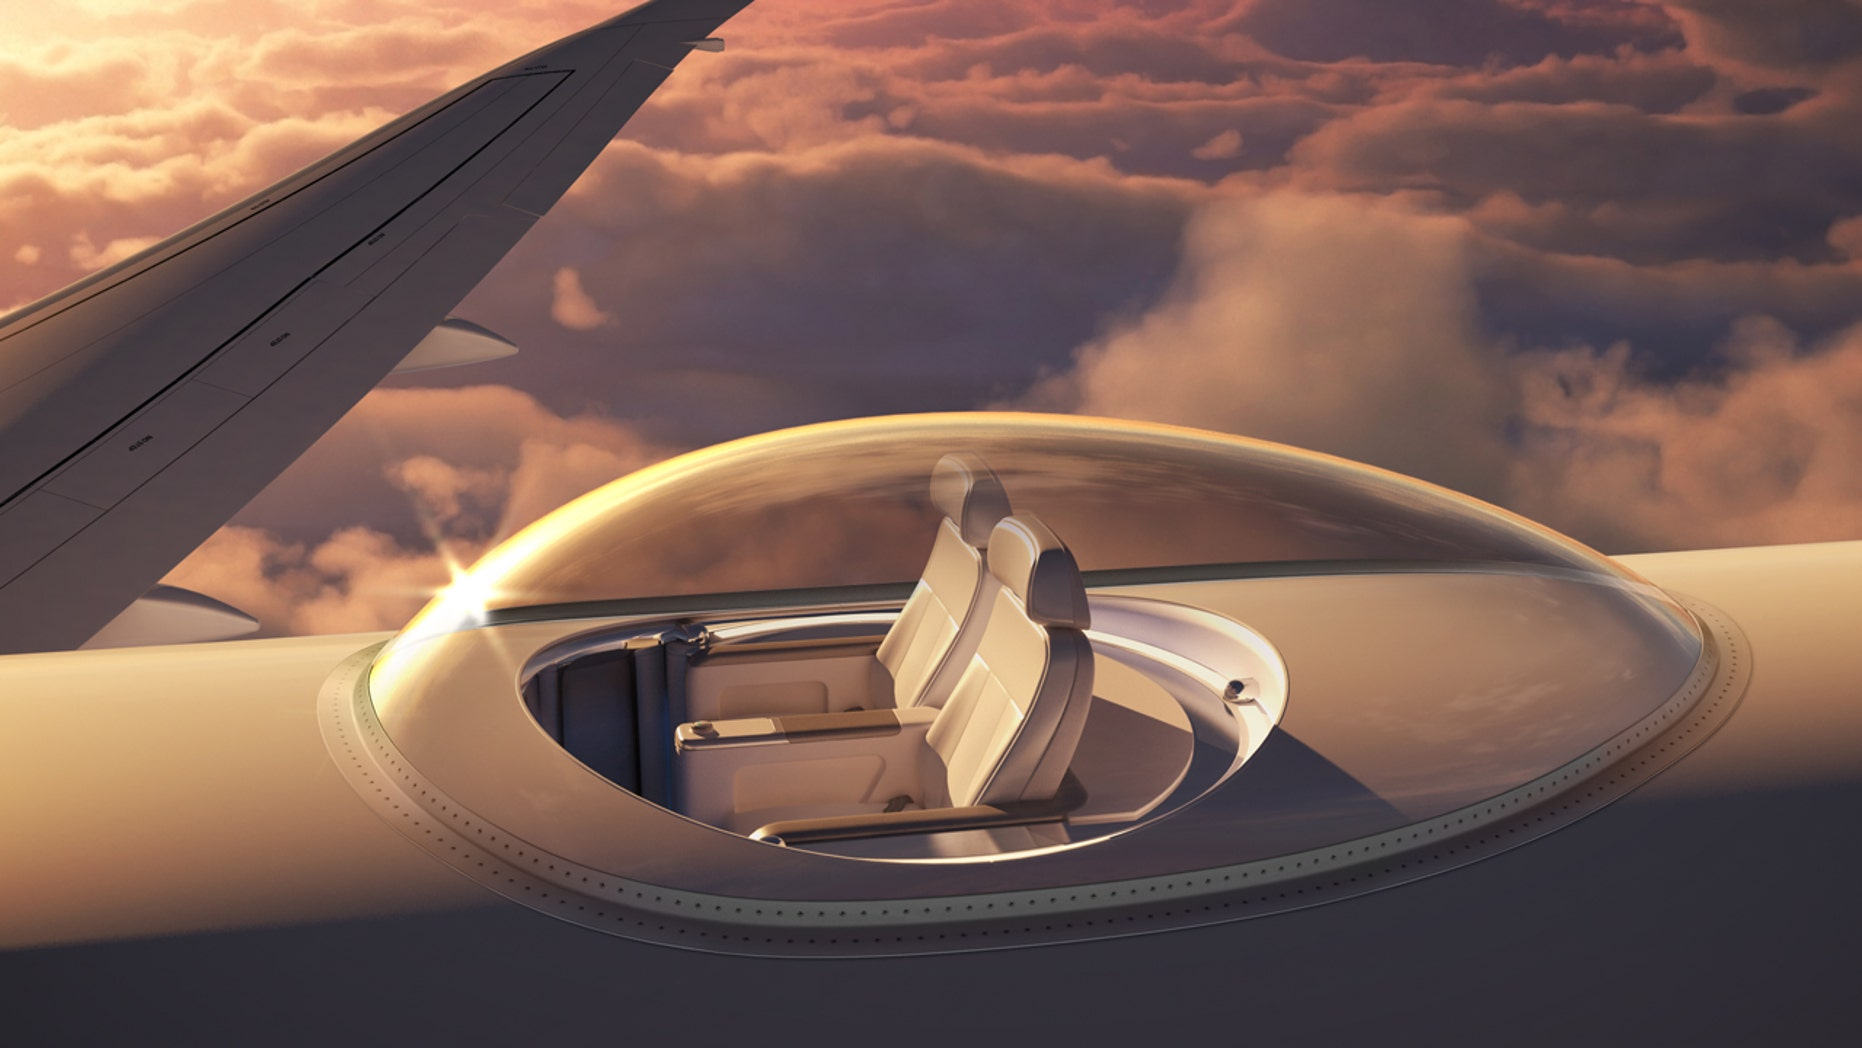 Sit high above it all in a transparent canopy that sits on top of the airplane.